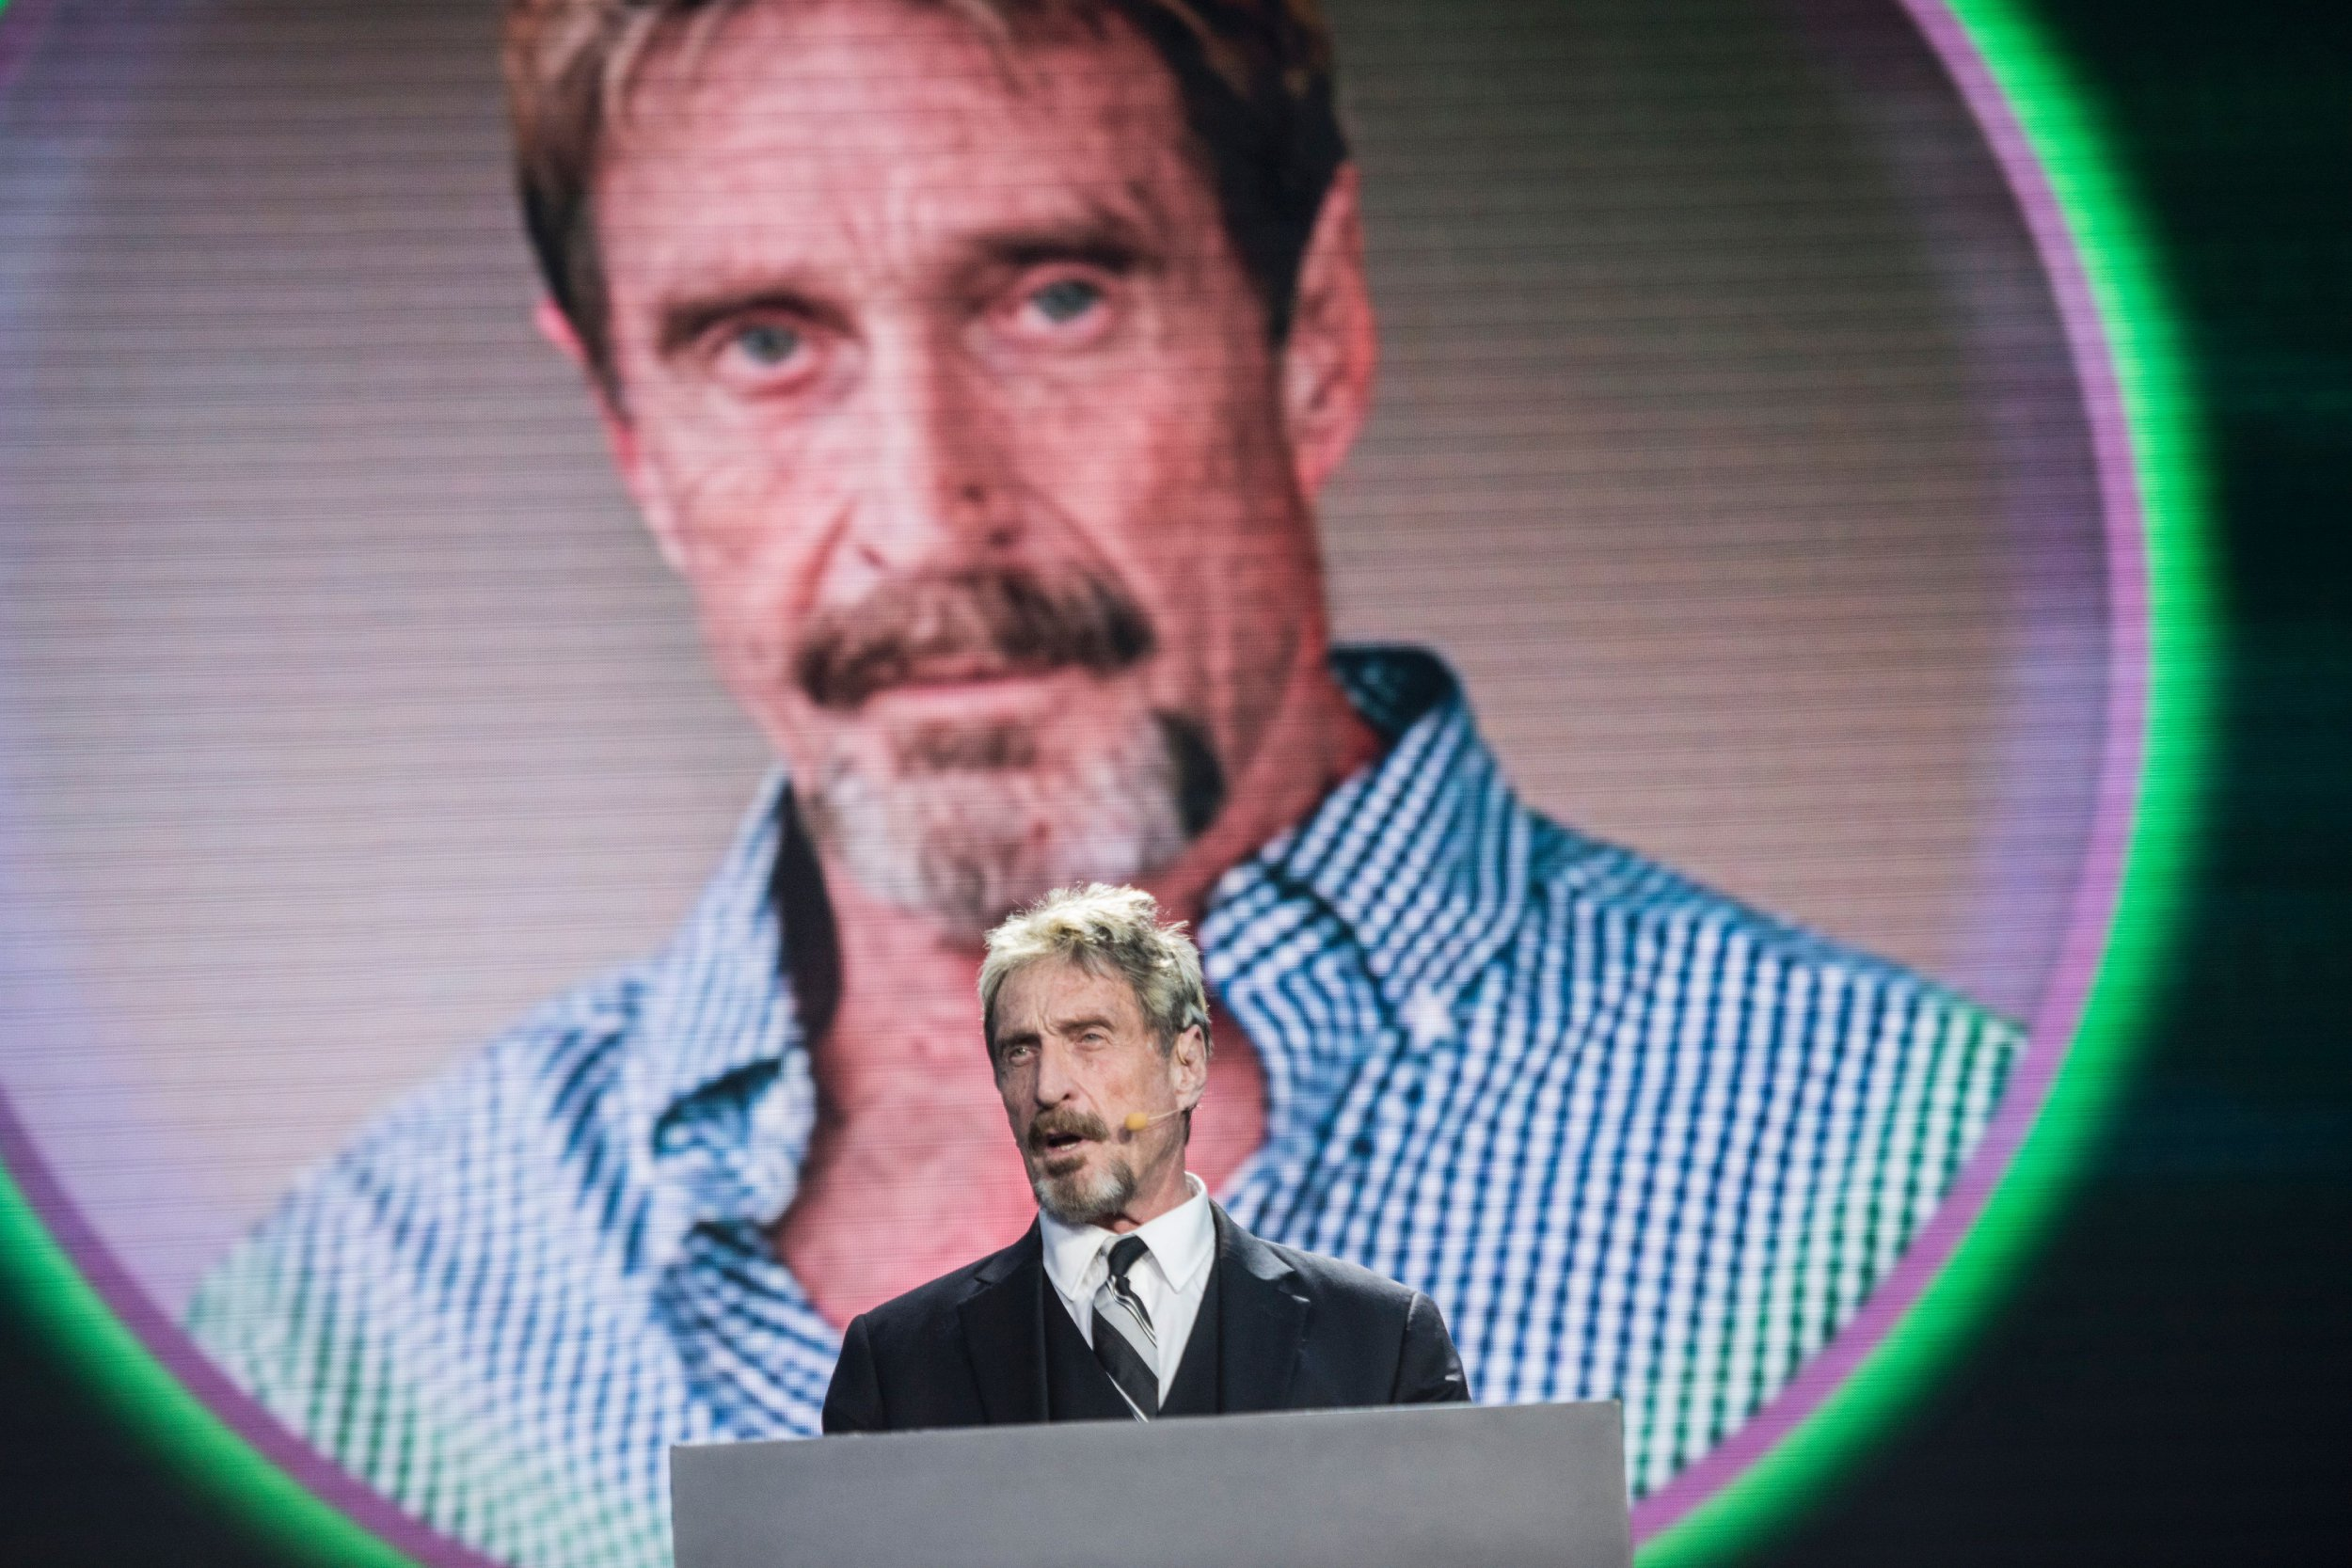 John McAfee, owner of a eponymous anti-virus company, speaks during a China Internet Security Conference in Beijing on Aug 16, 2016. / AFP / FRED DUFOUR (Photo credit should review FRED DUFOUR/AFP/Getty Images)